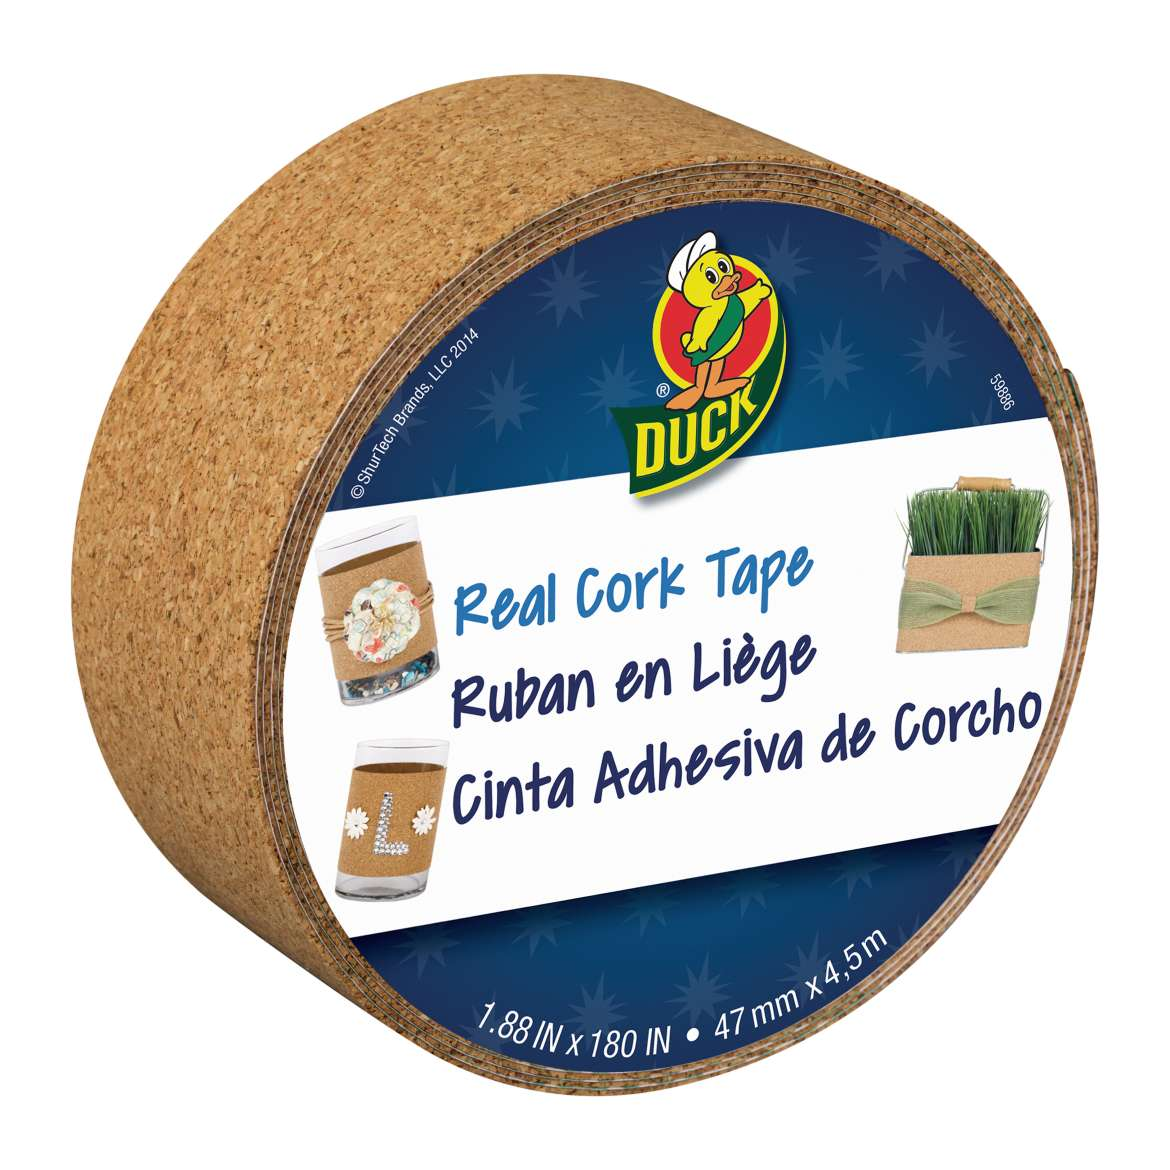 Real Cork Tape